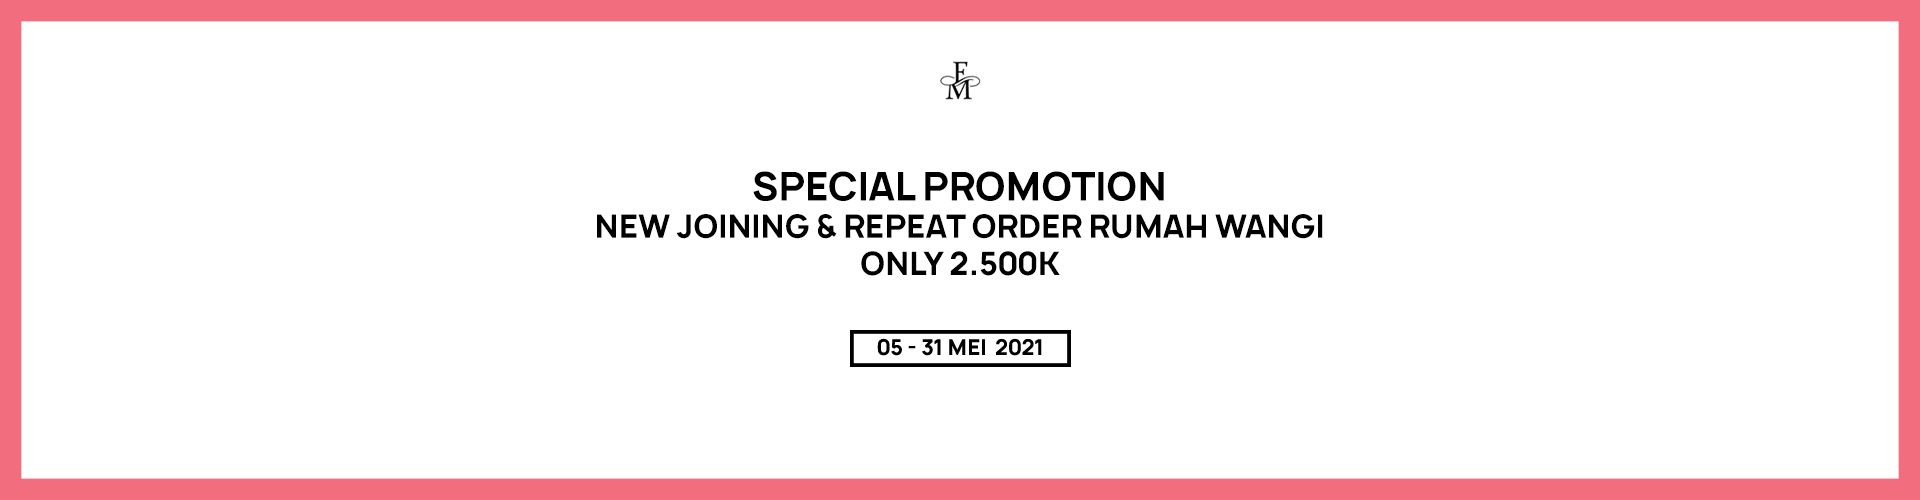 SPECIAL PROMOTION NEW JOINING & REPEAT ORDER RUMAH WANGI ONLY 2.500K